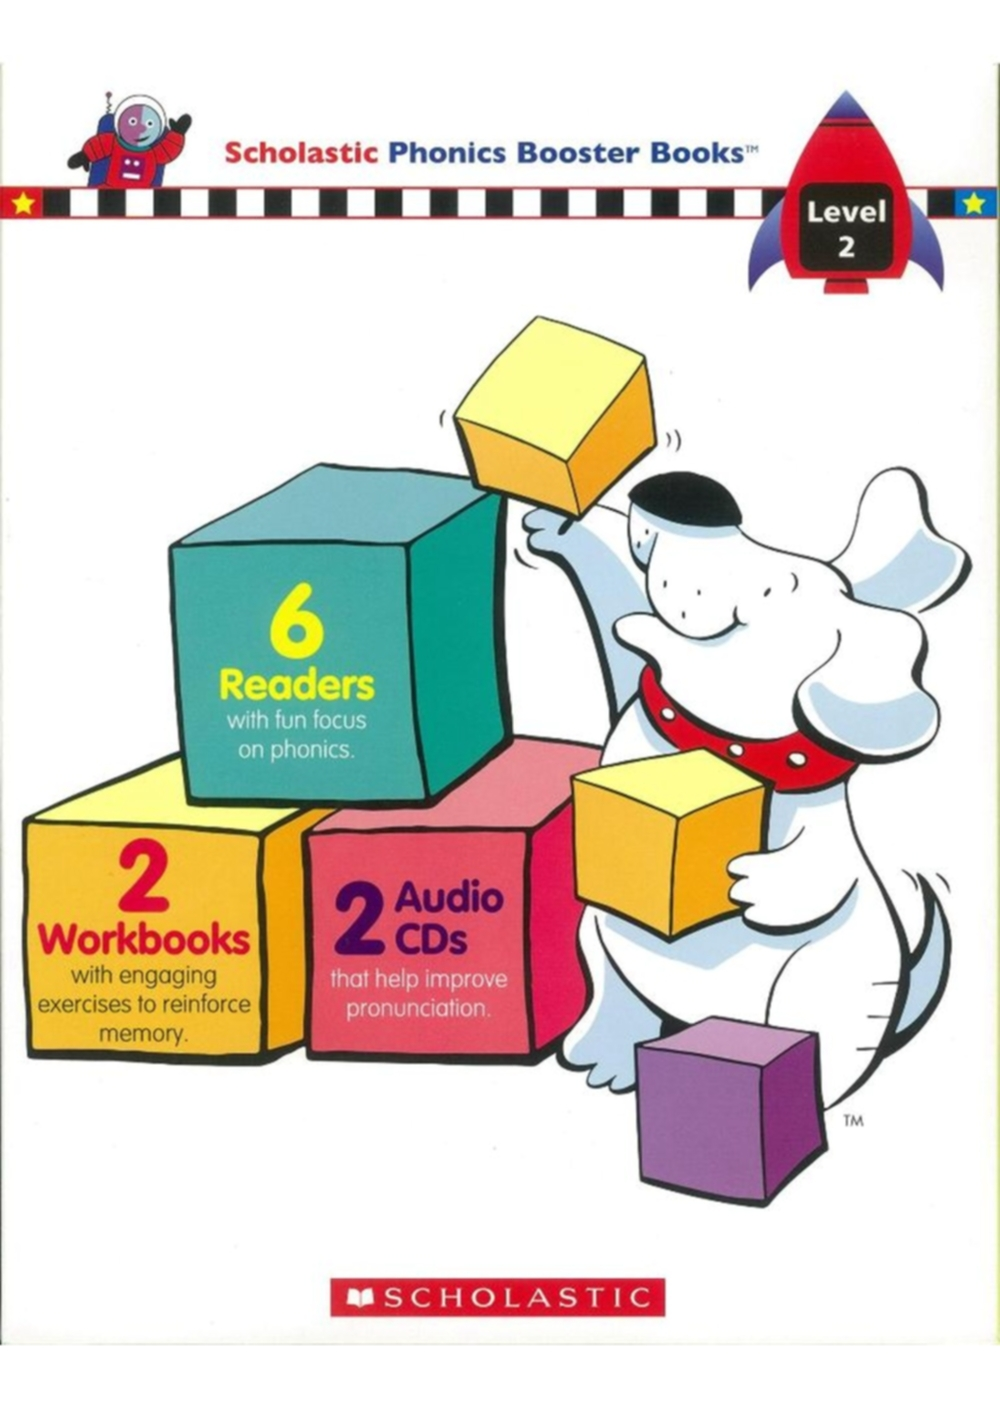 Scholastic Phonics Boosters Books Level 2: Readers(#7-12)